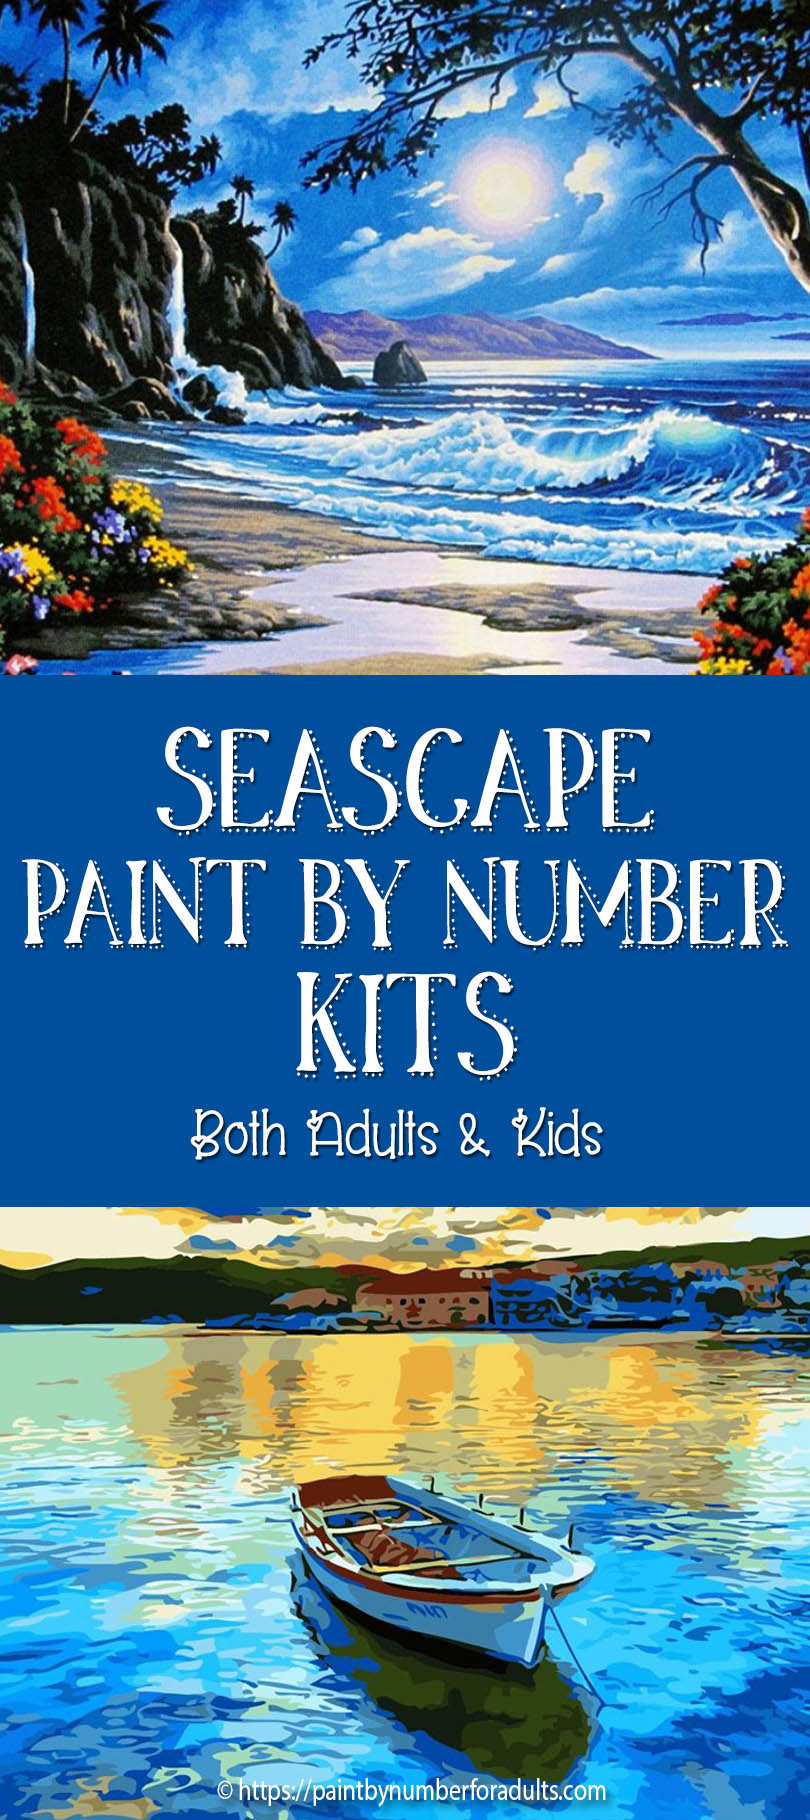 Seascape Paint by Number Kits